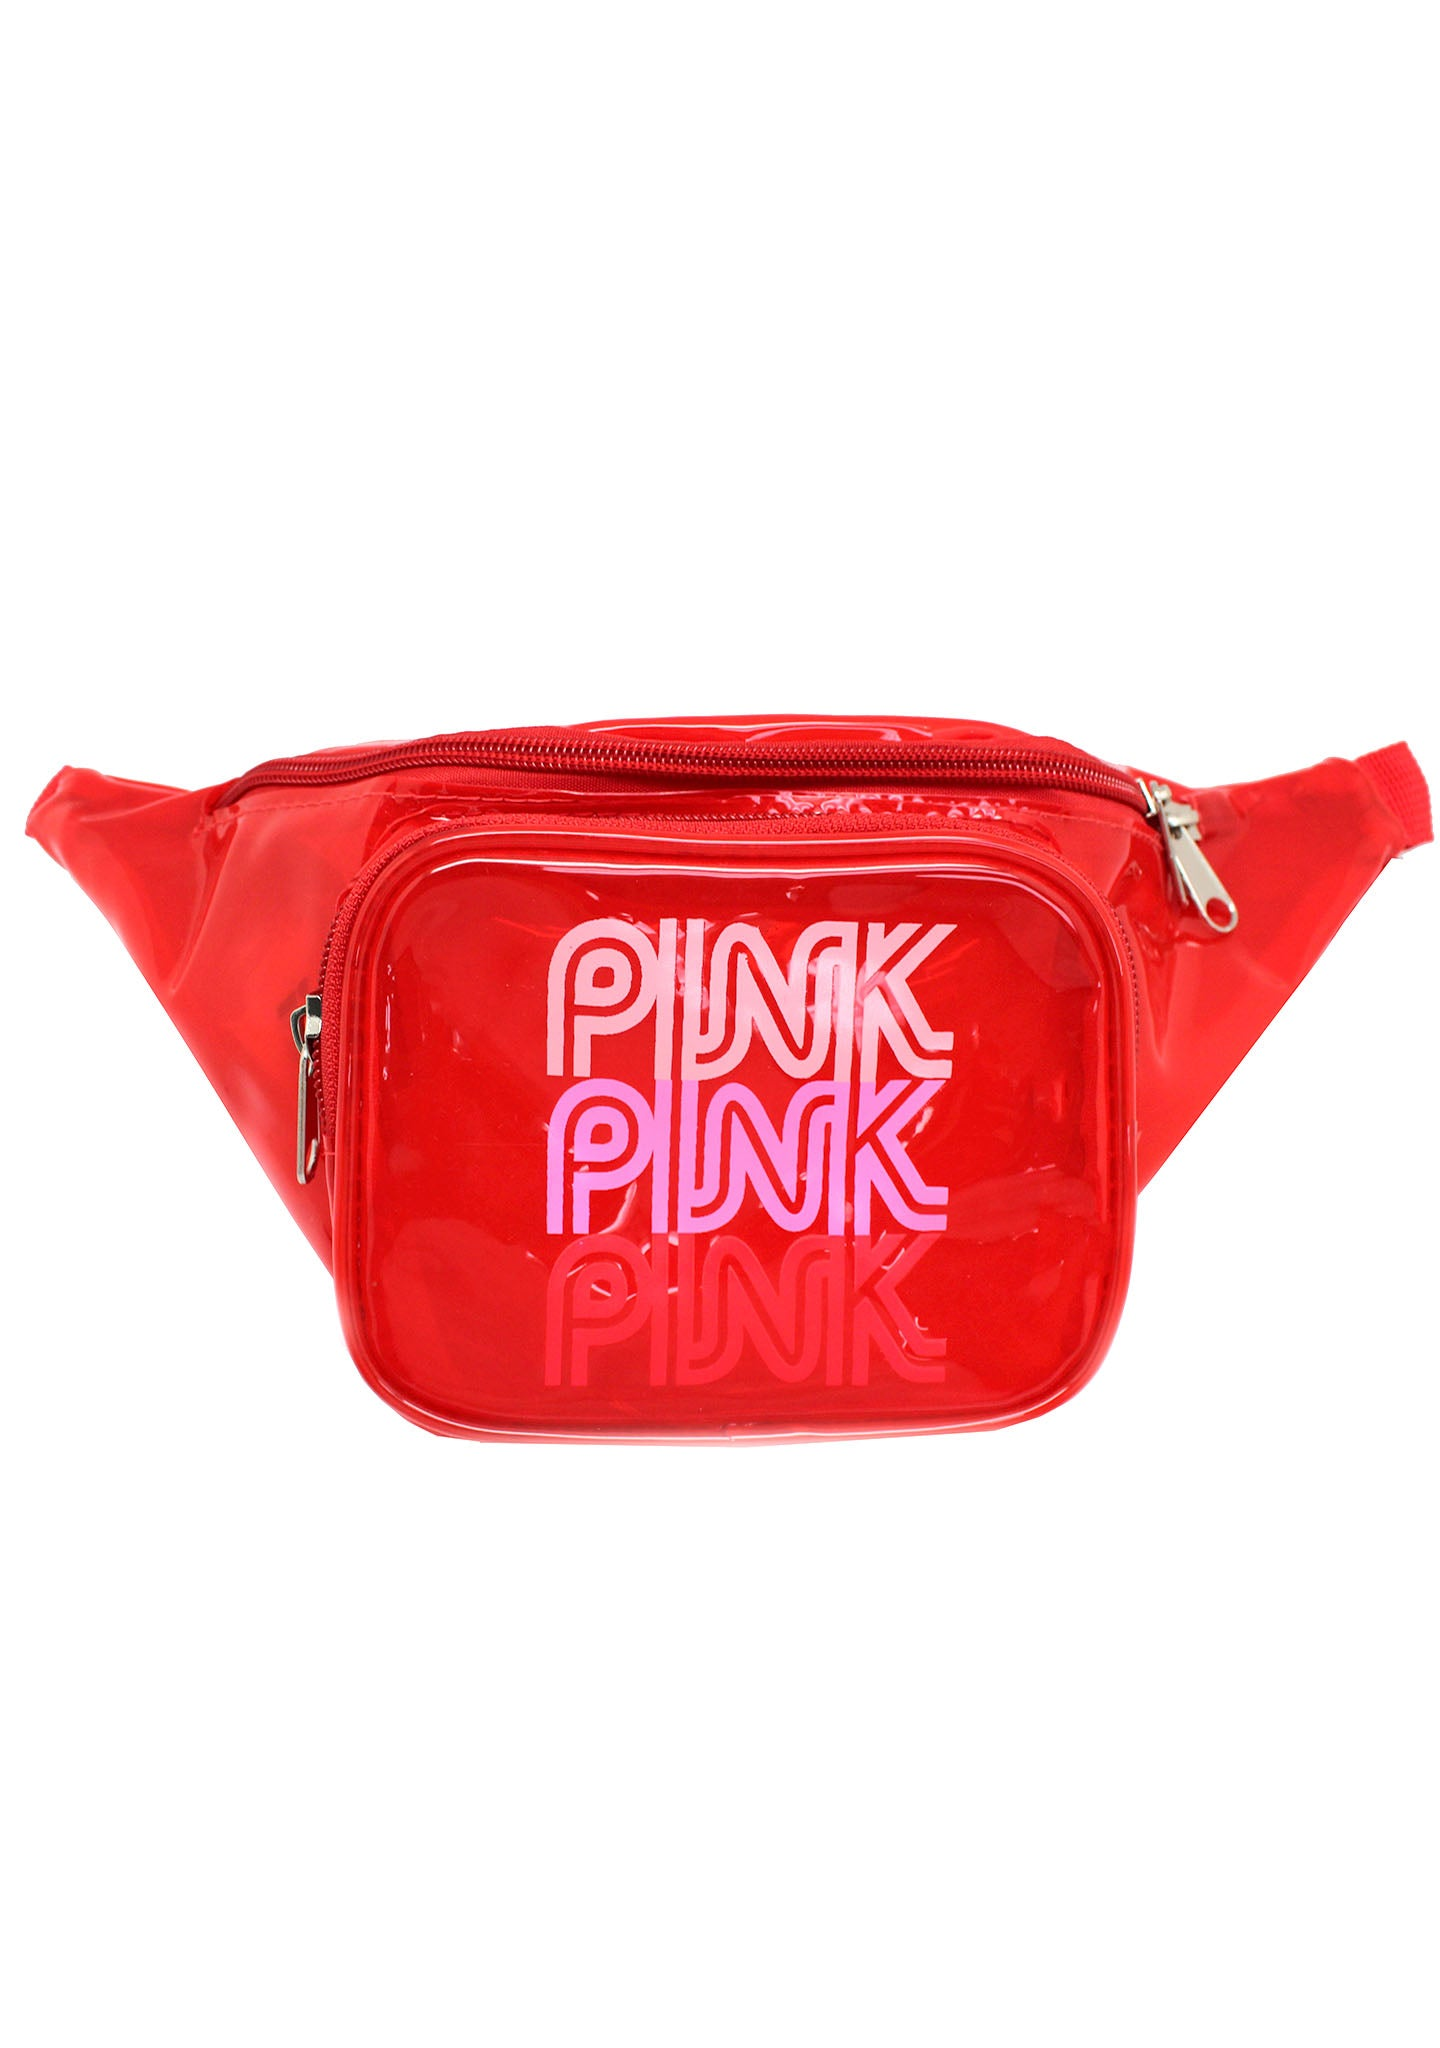 7 LUXE Pink Lady Fanny Pack in Red